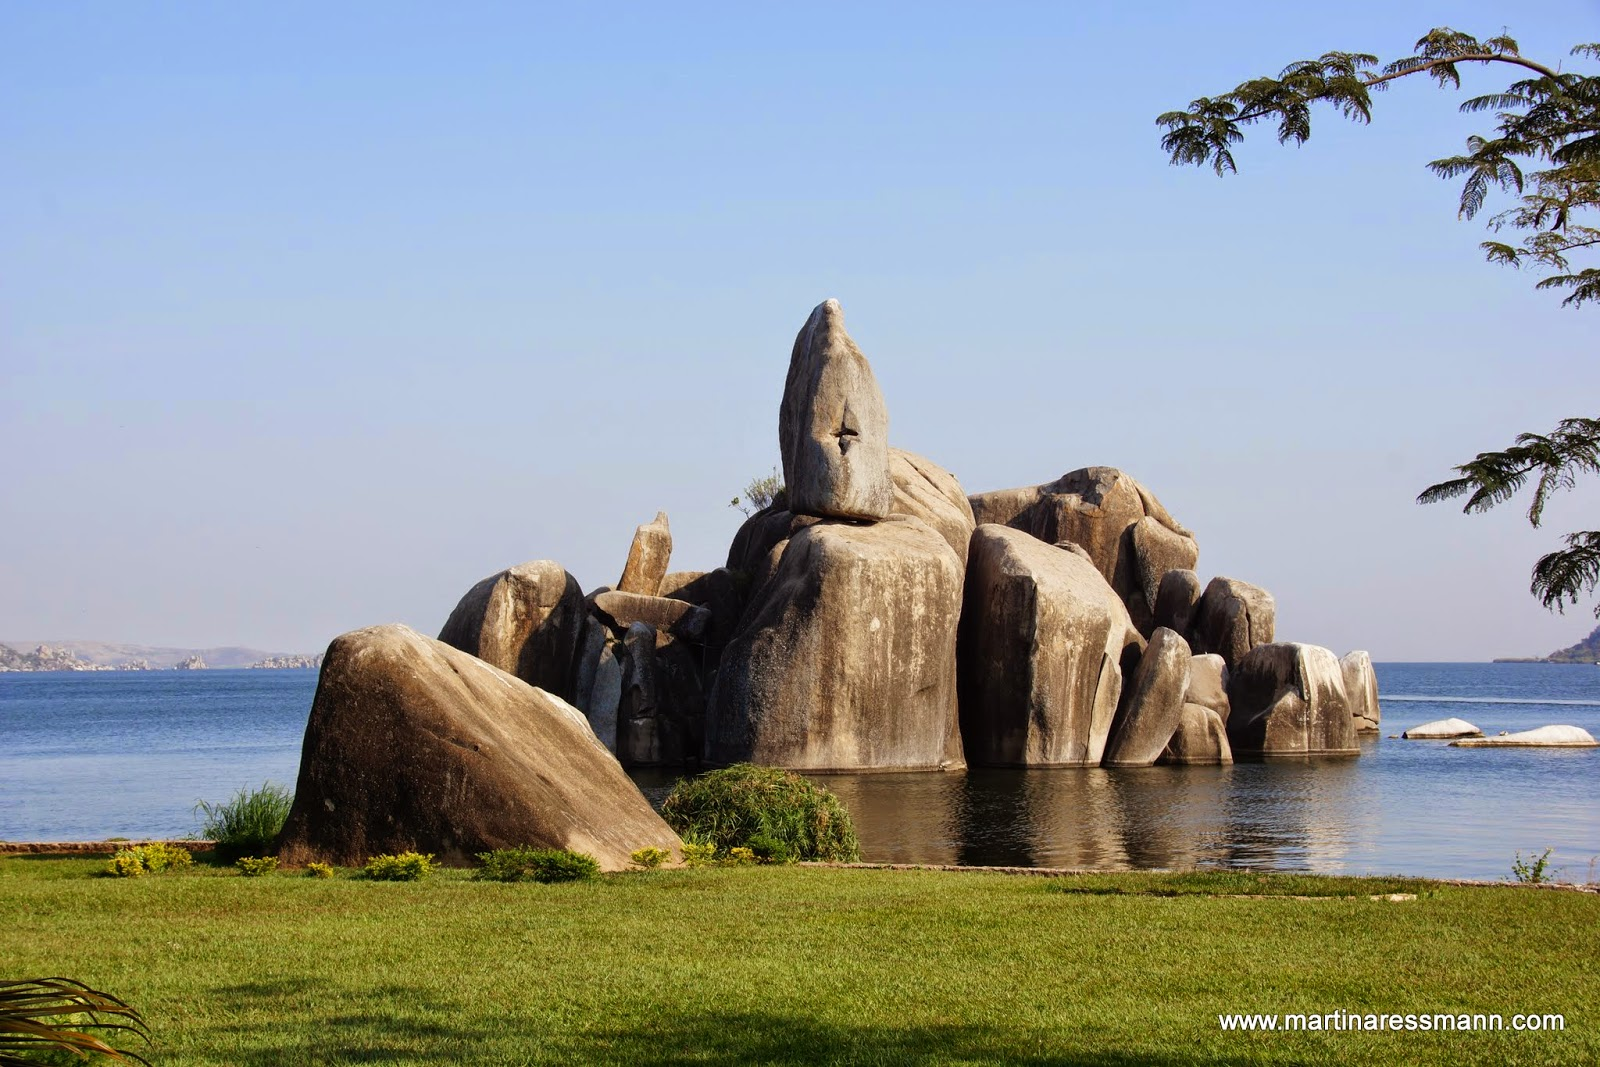 Bismarck Rock Mwanza, City Tour Mwanza | Faszination Afrika